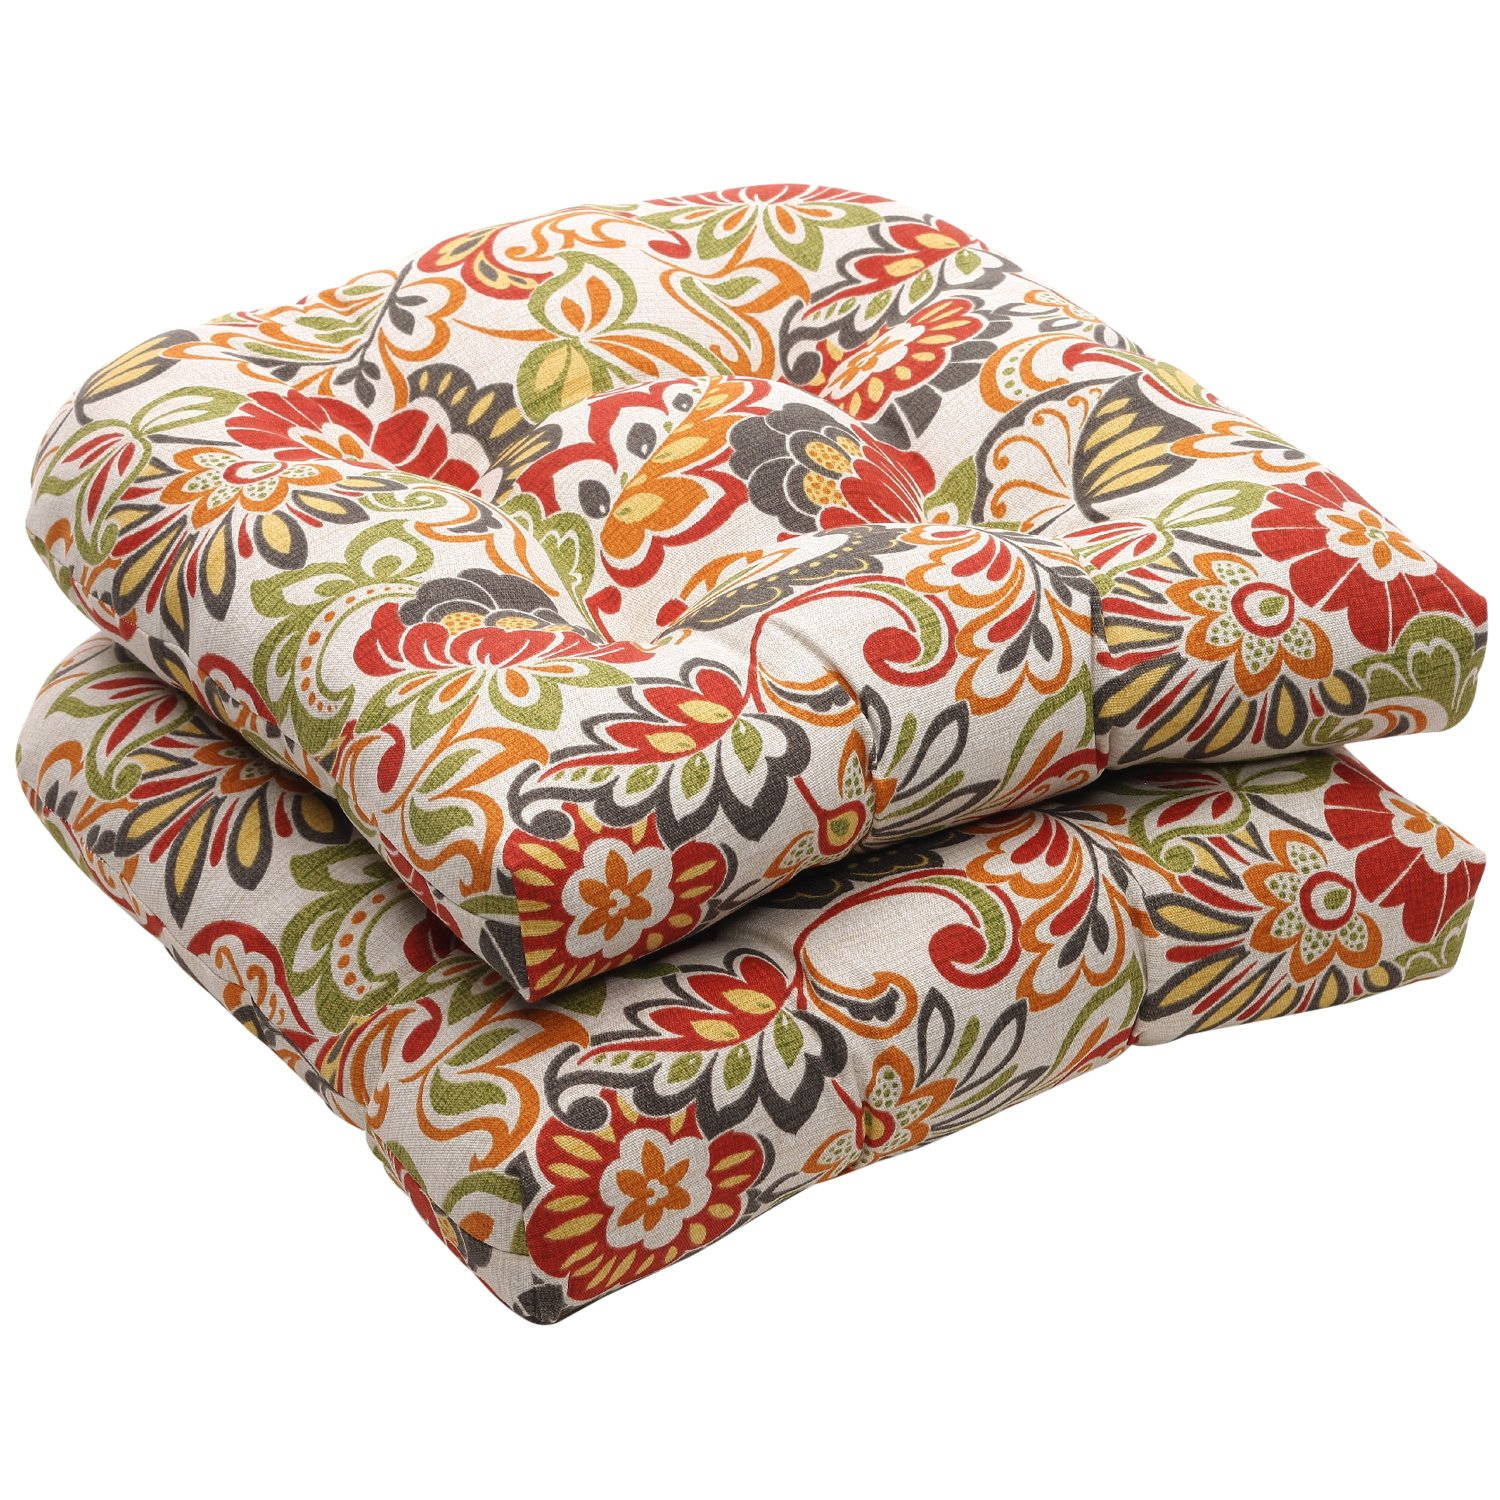 2 seat cushion pillow for outdoor patio furniture porch for Garden furniture cushions